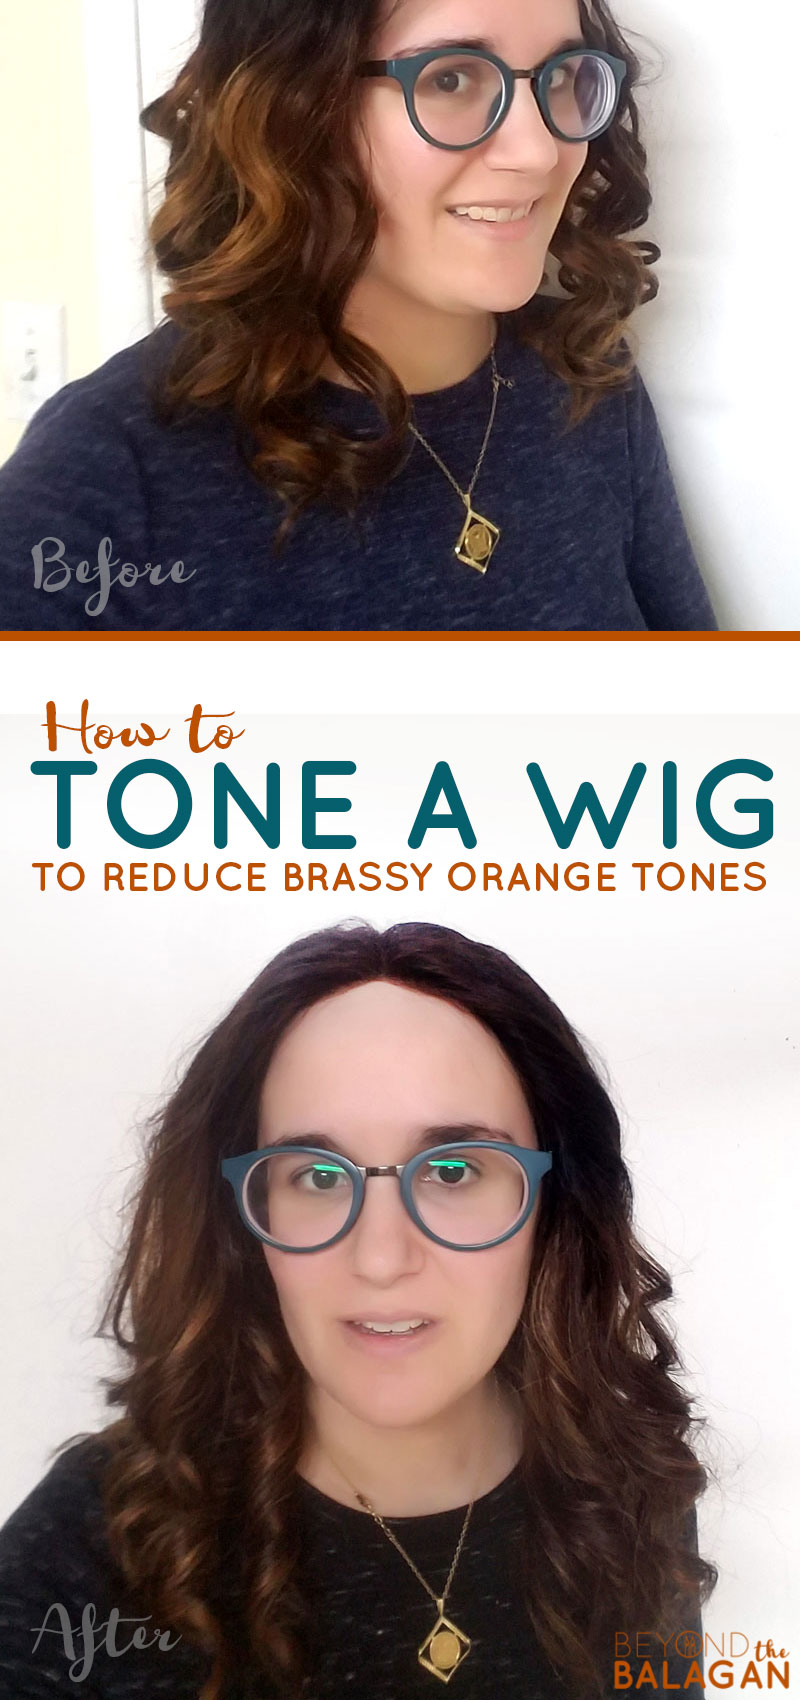 Click to learn how to tone a wig to reduce the brassy orange tones! These tips for wearing and styling a lace wig or sheitel will help you care for it on your own! #wigs #jewishfashion #beauty #lacewig